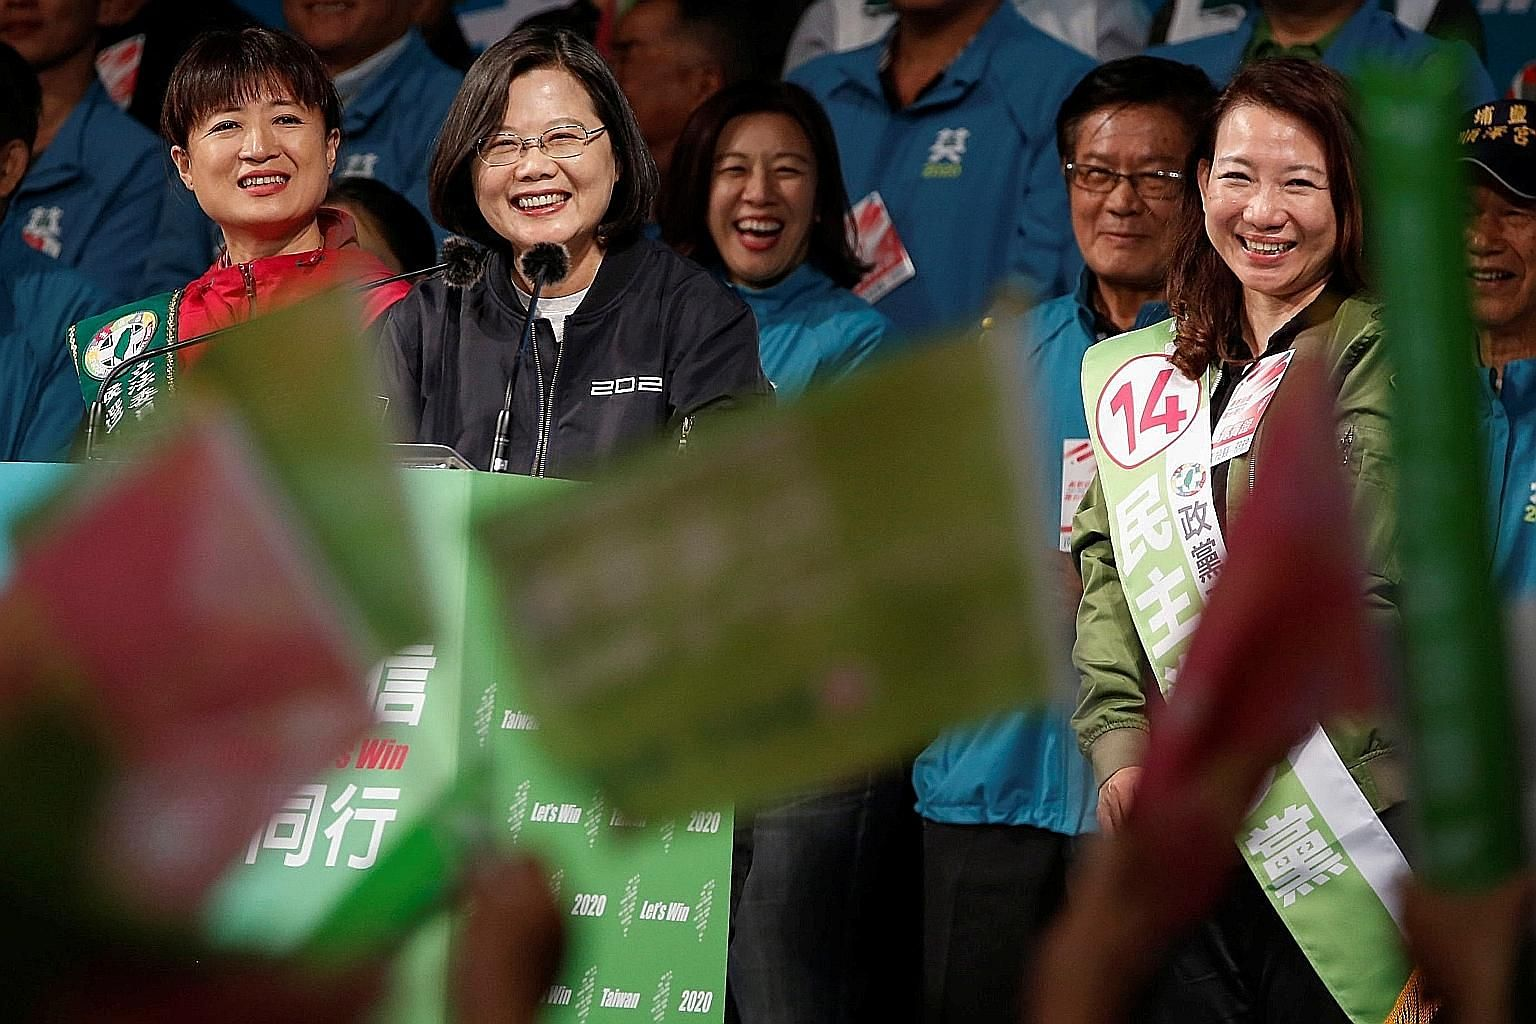 Kuomintang Party candidate Han Kuo-yu greeting supporters during an election campaign event in Keelung on Tuesday. Besides picking their president and vice-president, Taiwanese will also be electing the 113 members of the Legislative Yuan on Saturday